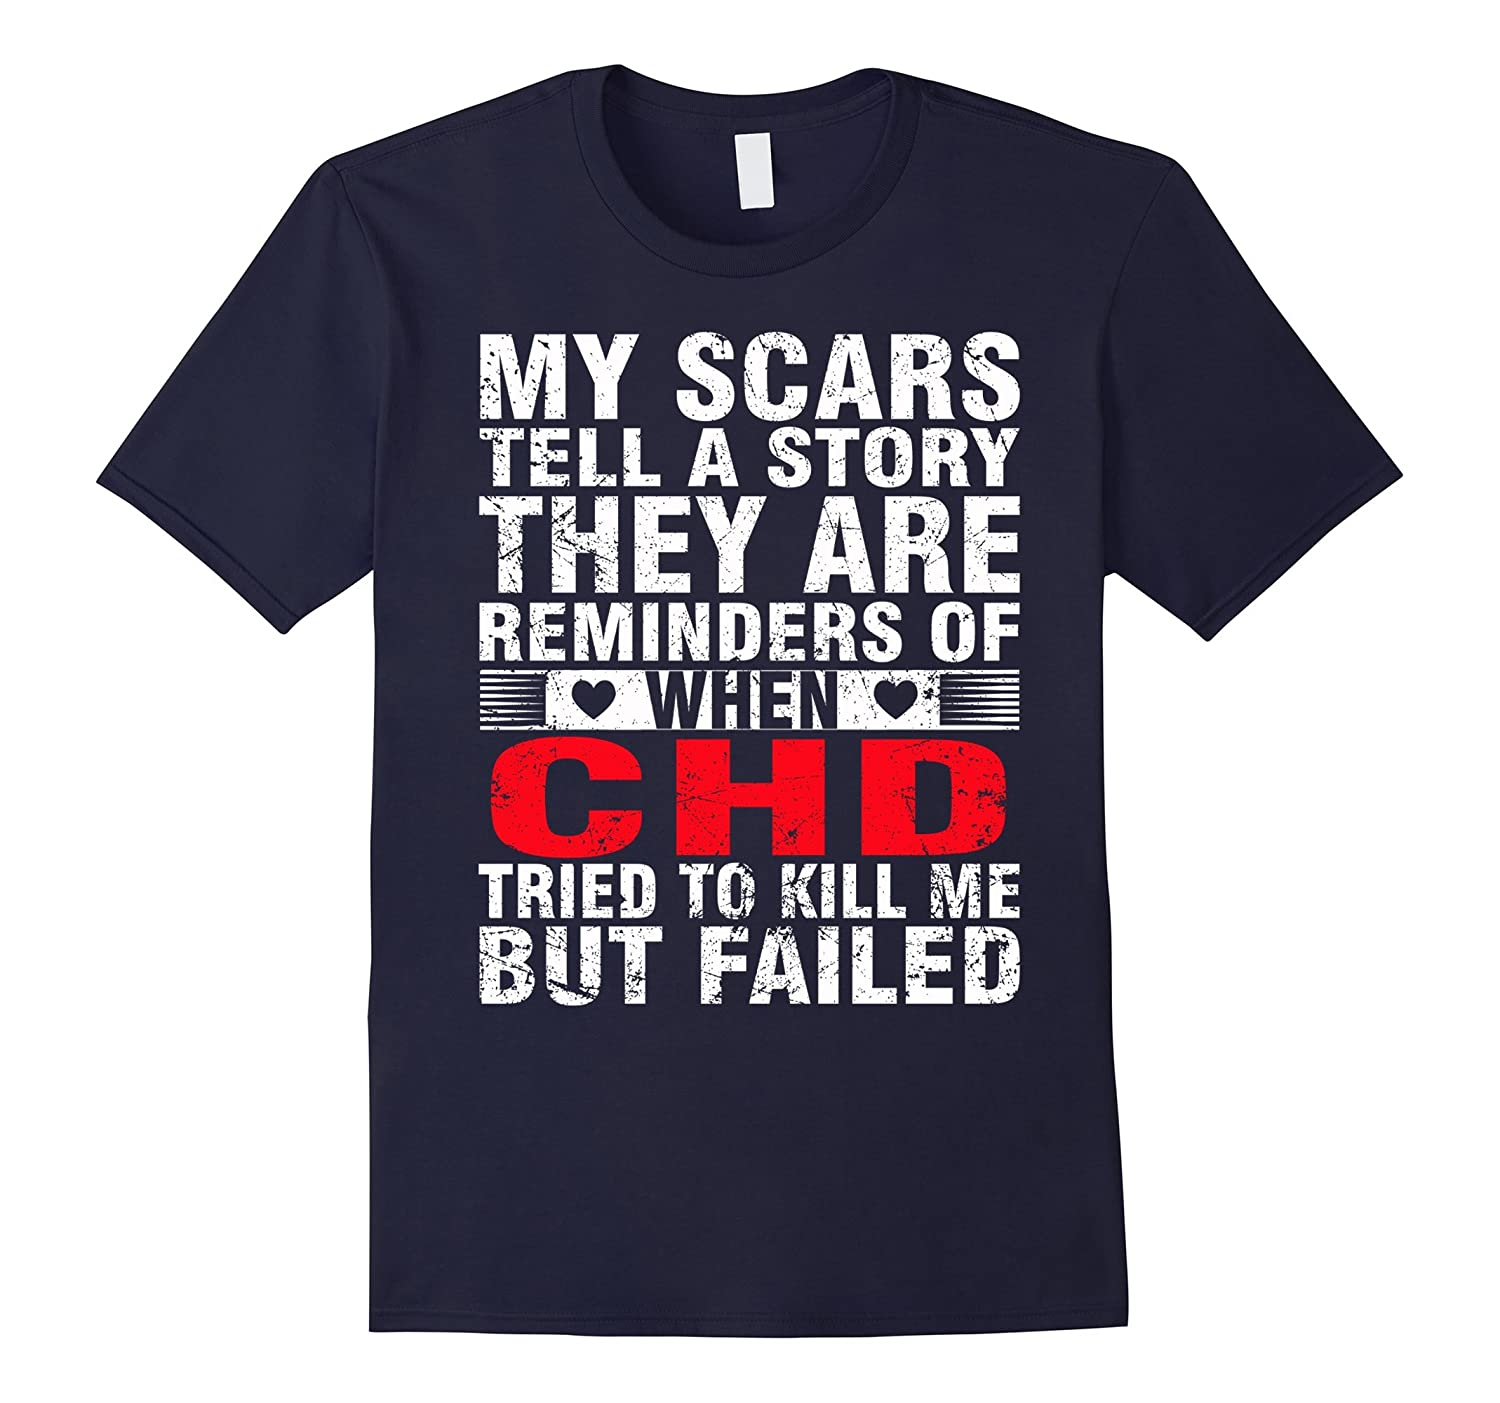 CHD TRIED TO KILL ME BUT FAILED T SHIRT-FL